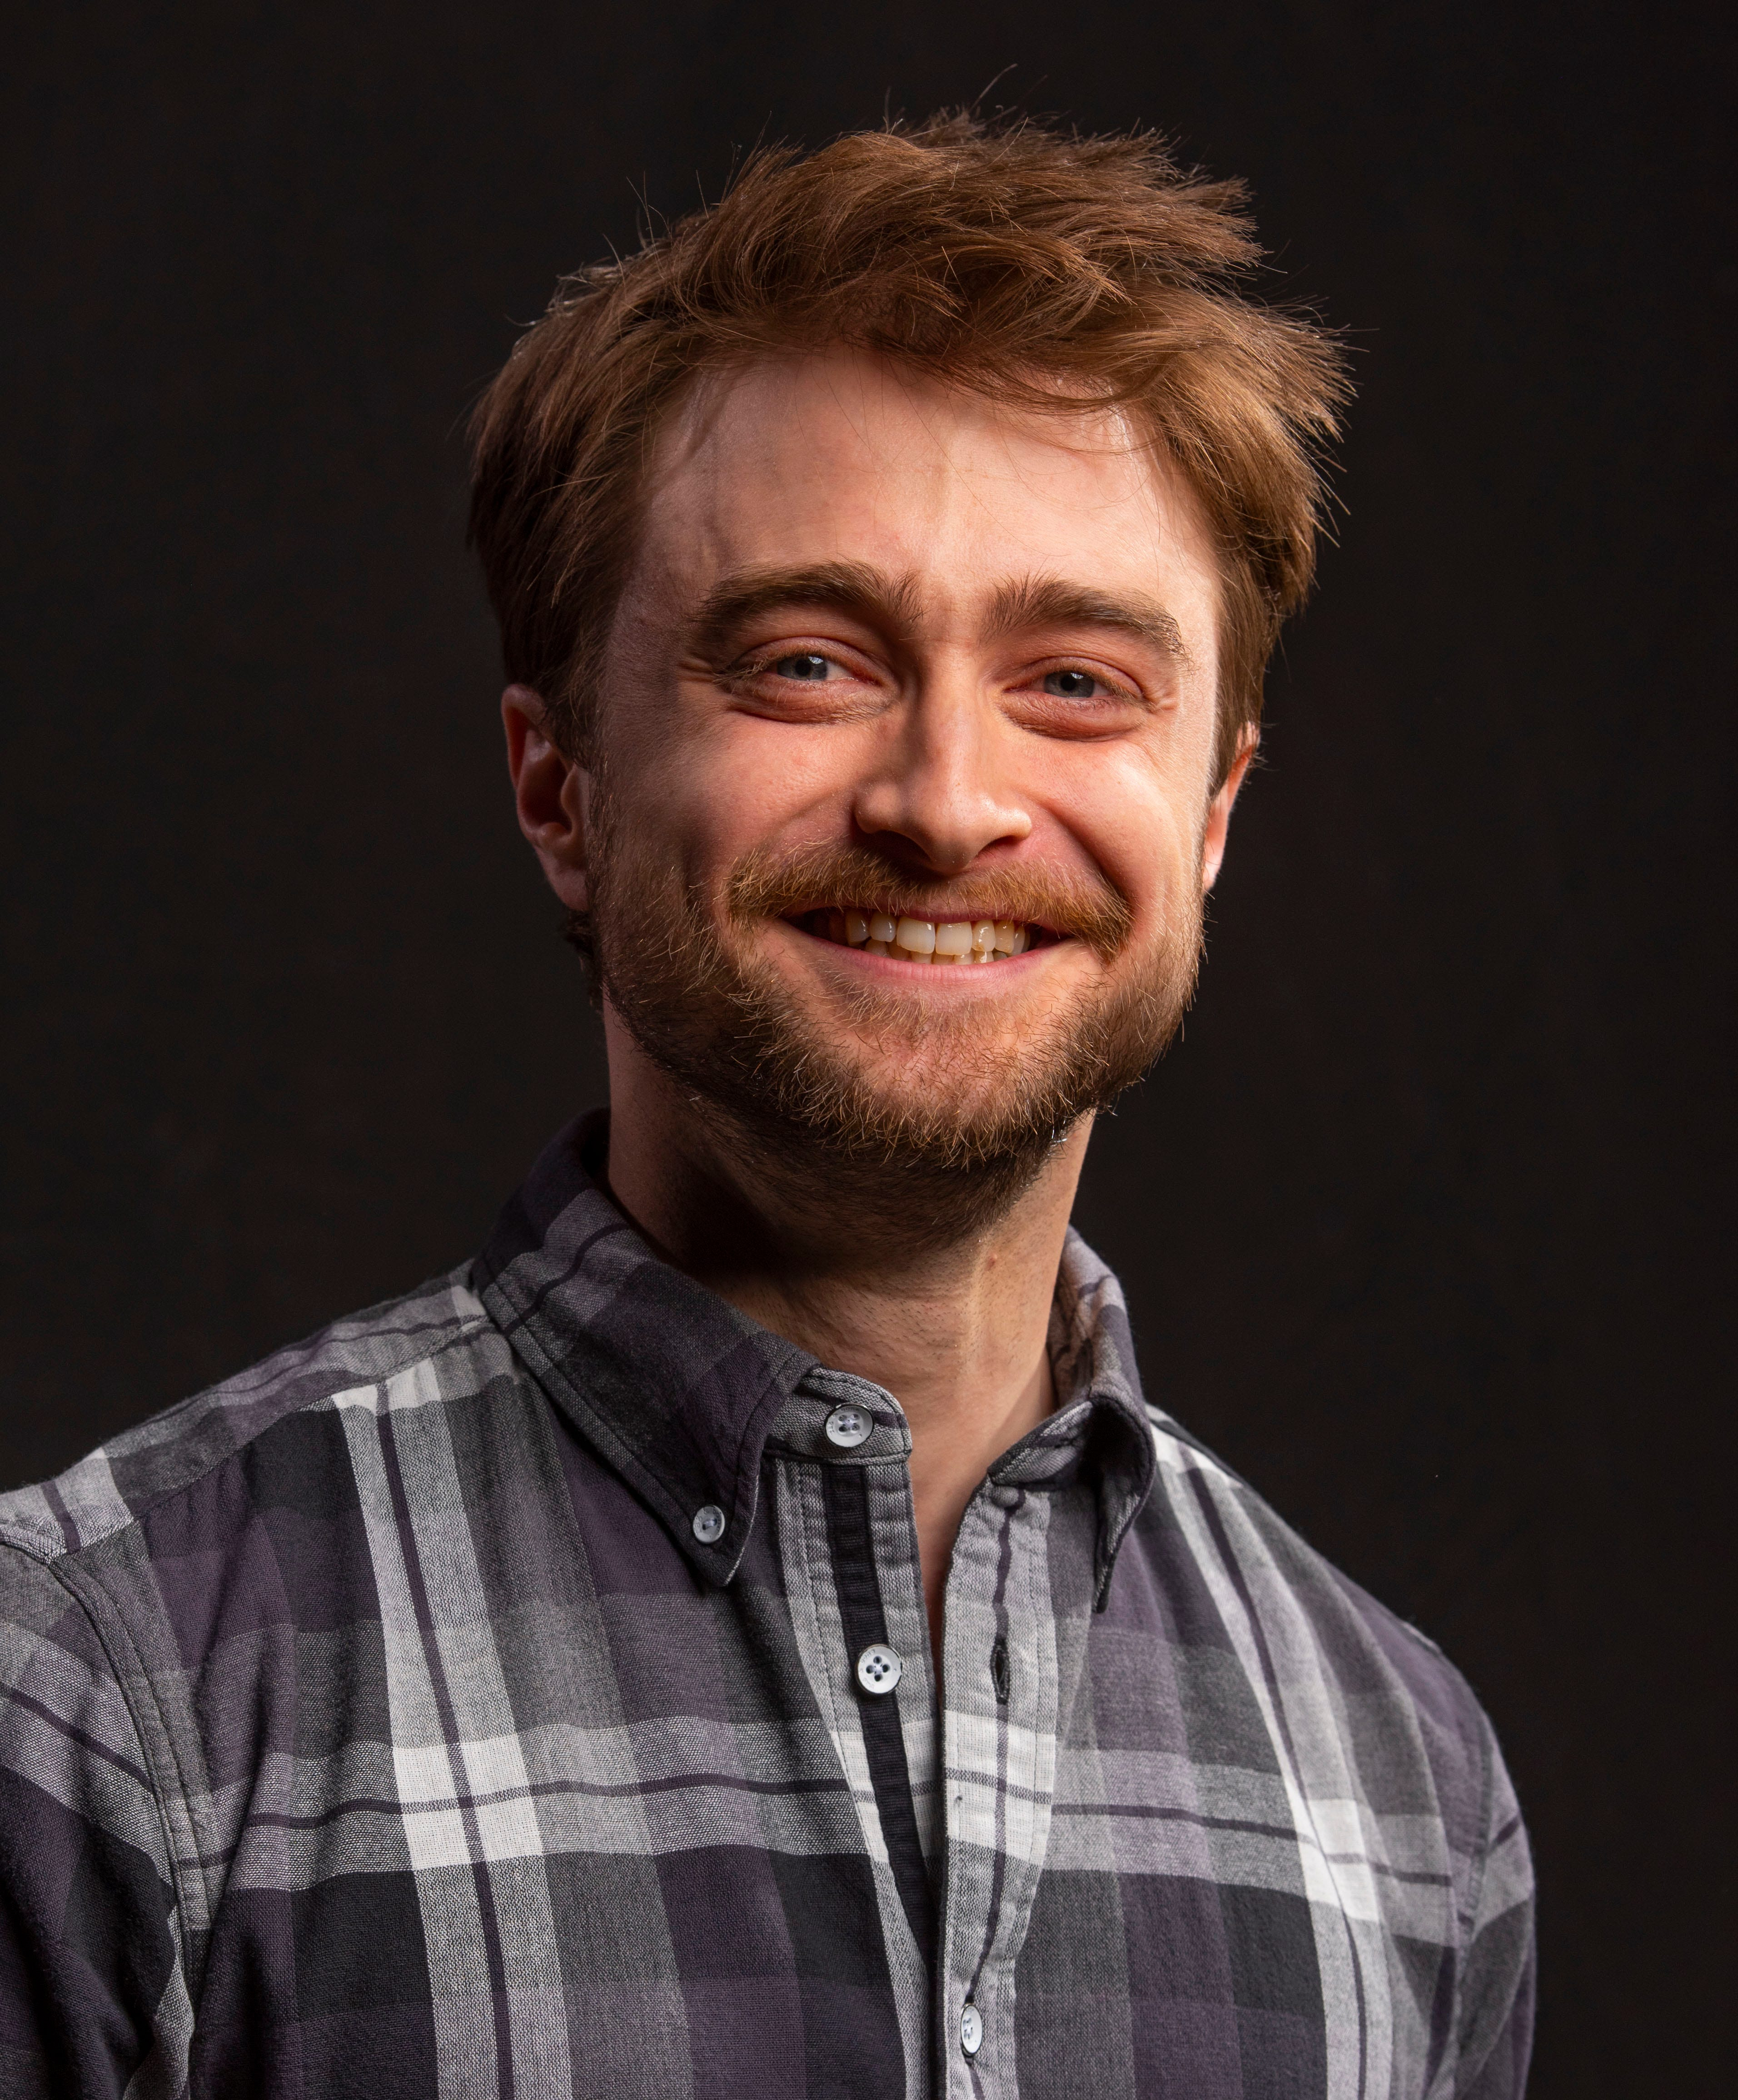 Daniel Radcliffe explains why he won t join Twitter, Instagram